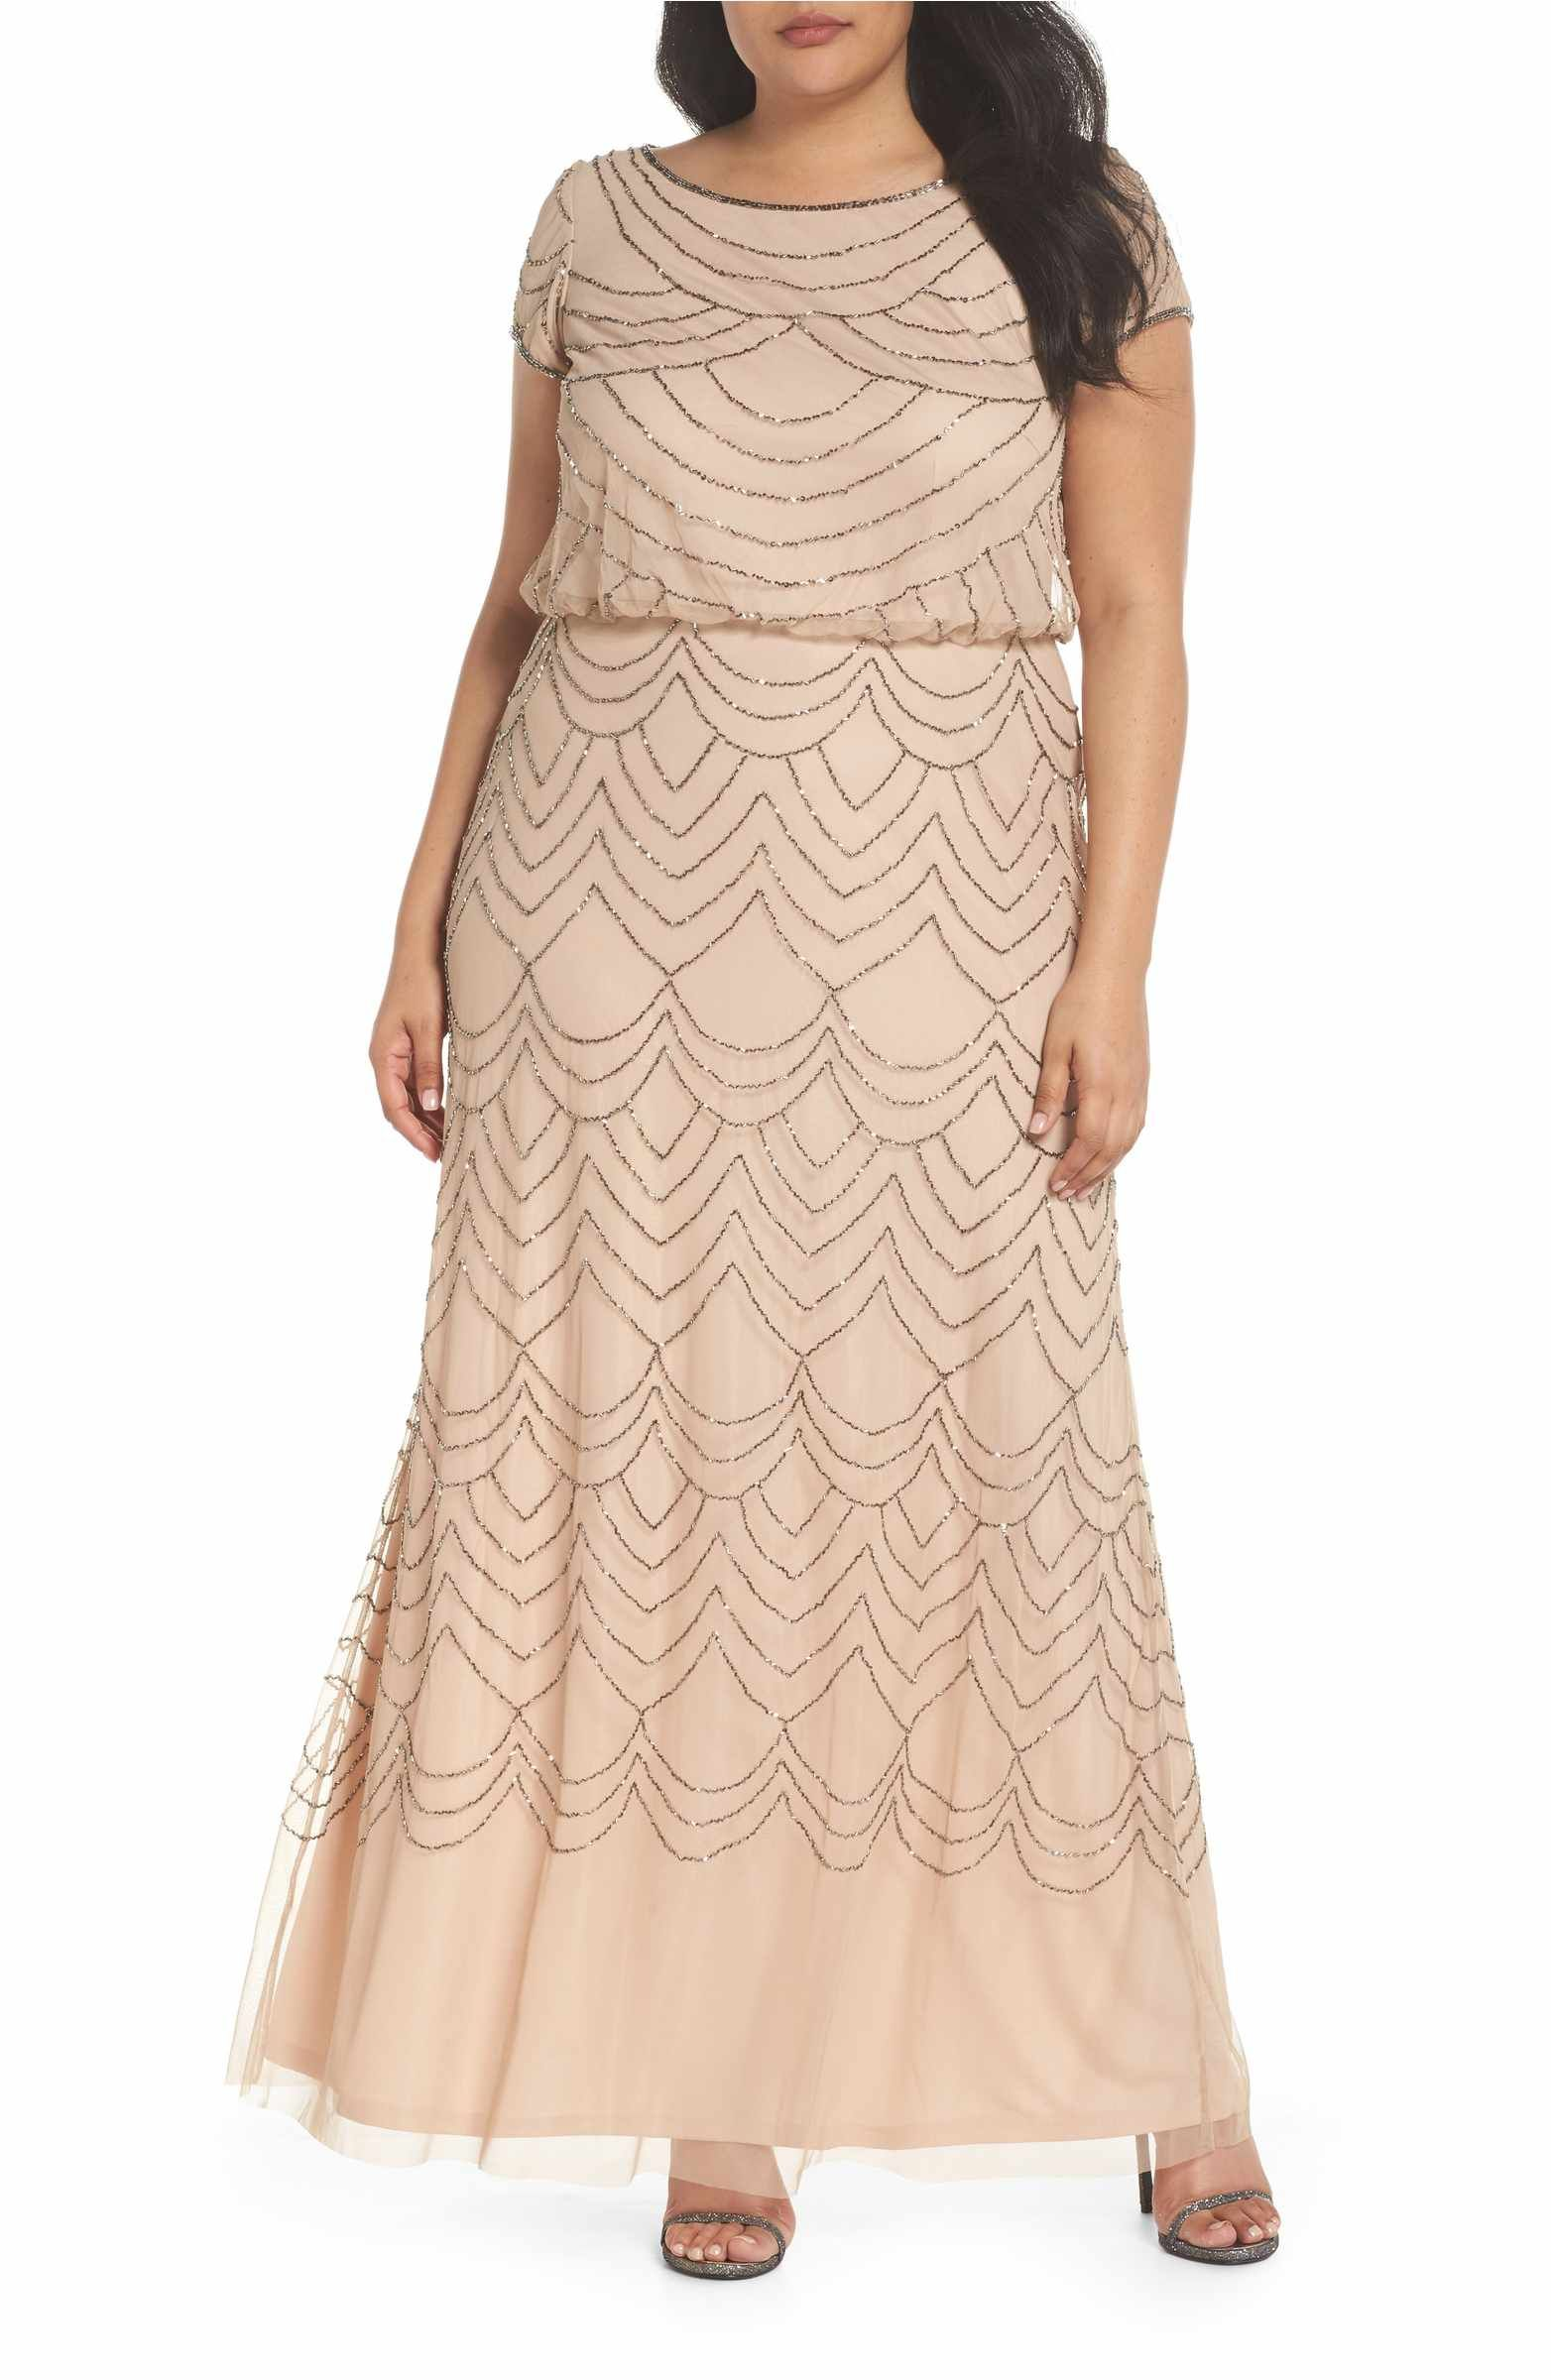 Jcpenney wedding dresses plus size  Beaded Blouson Gown  Adrianna papell Art deco design and Gowns